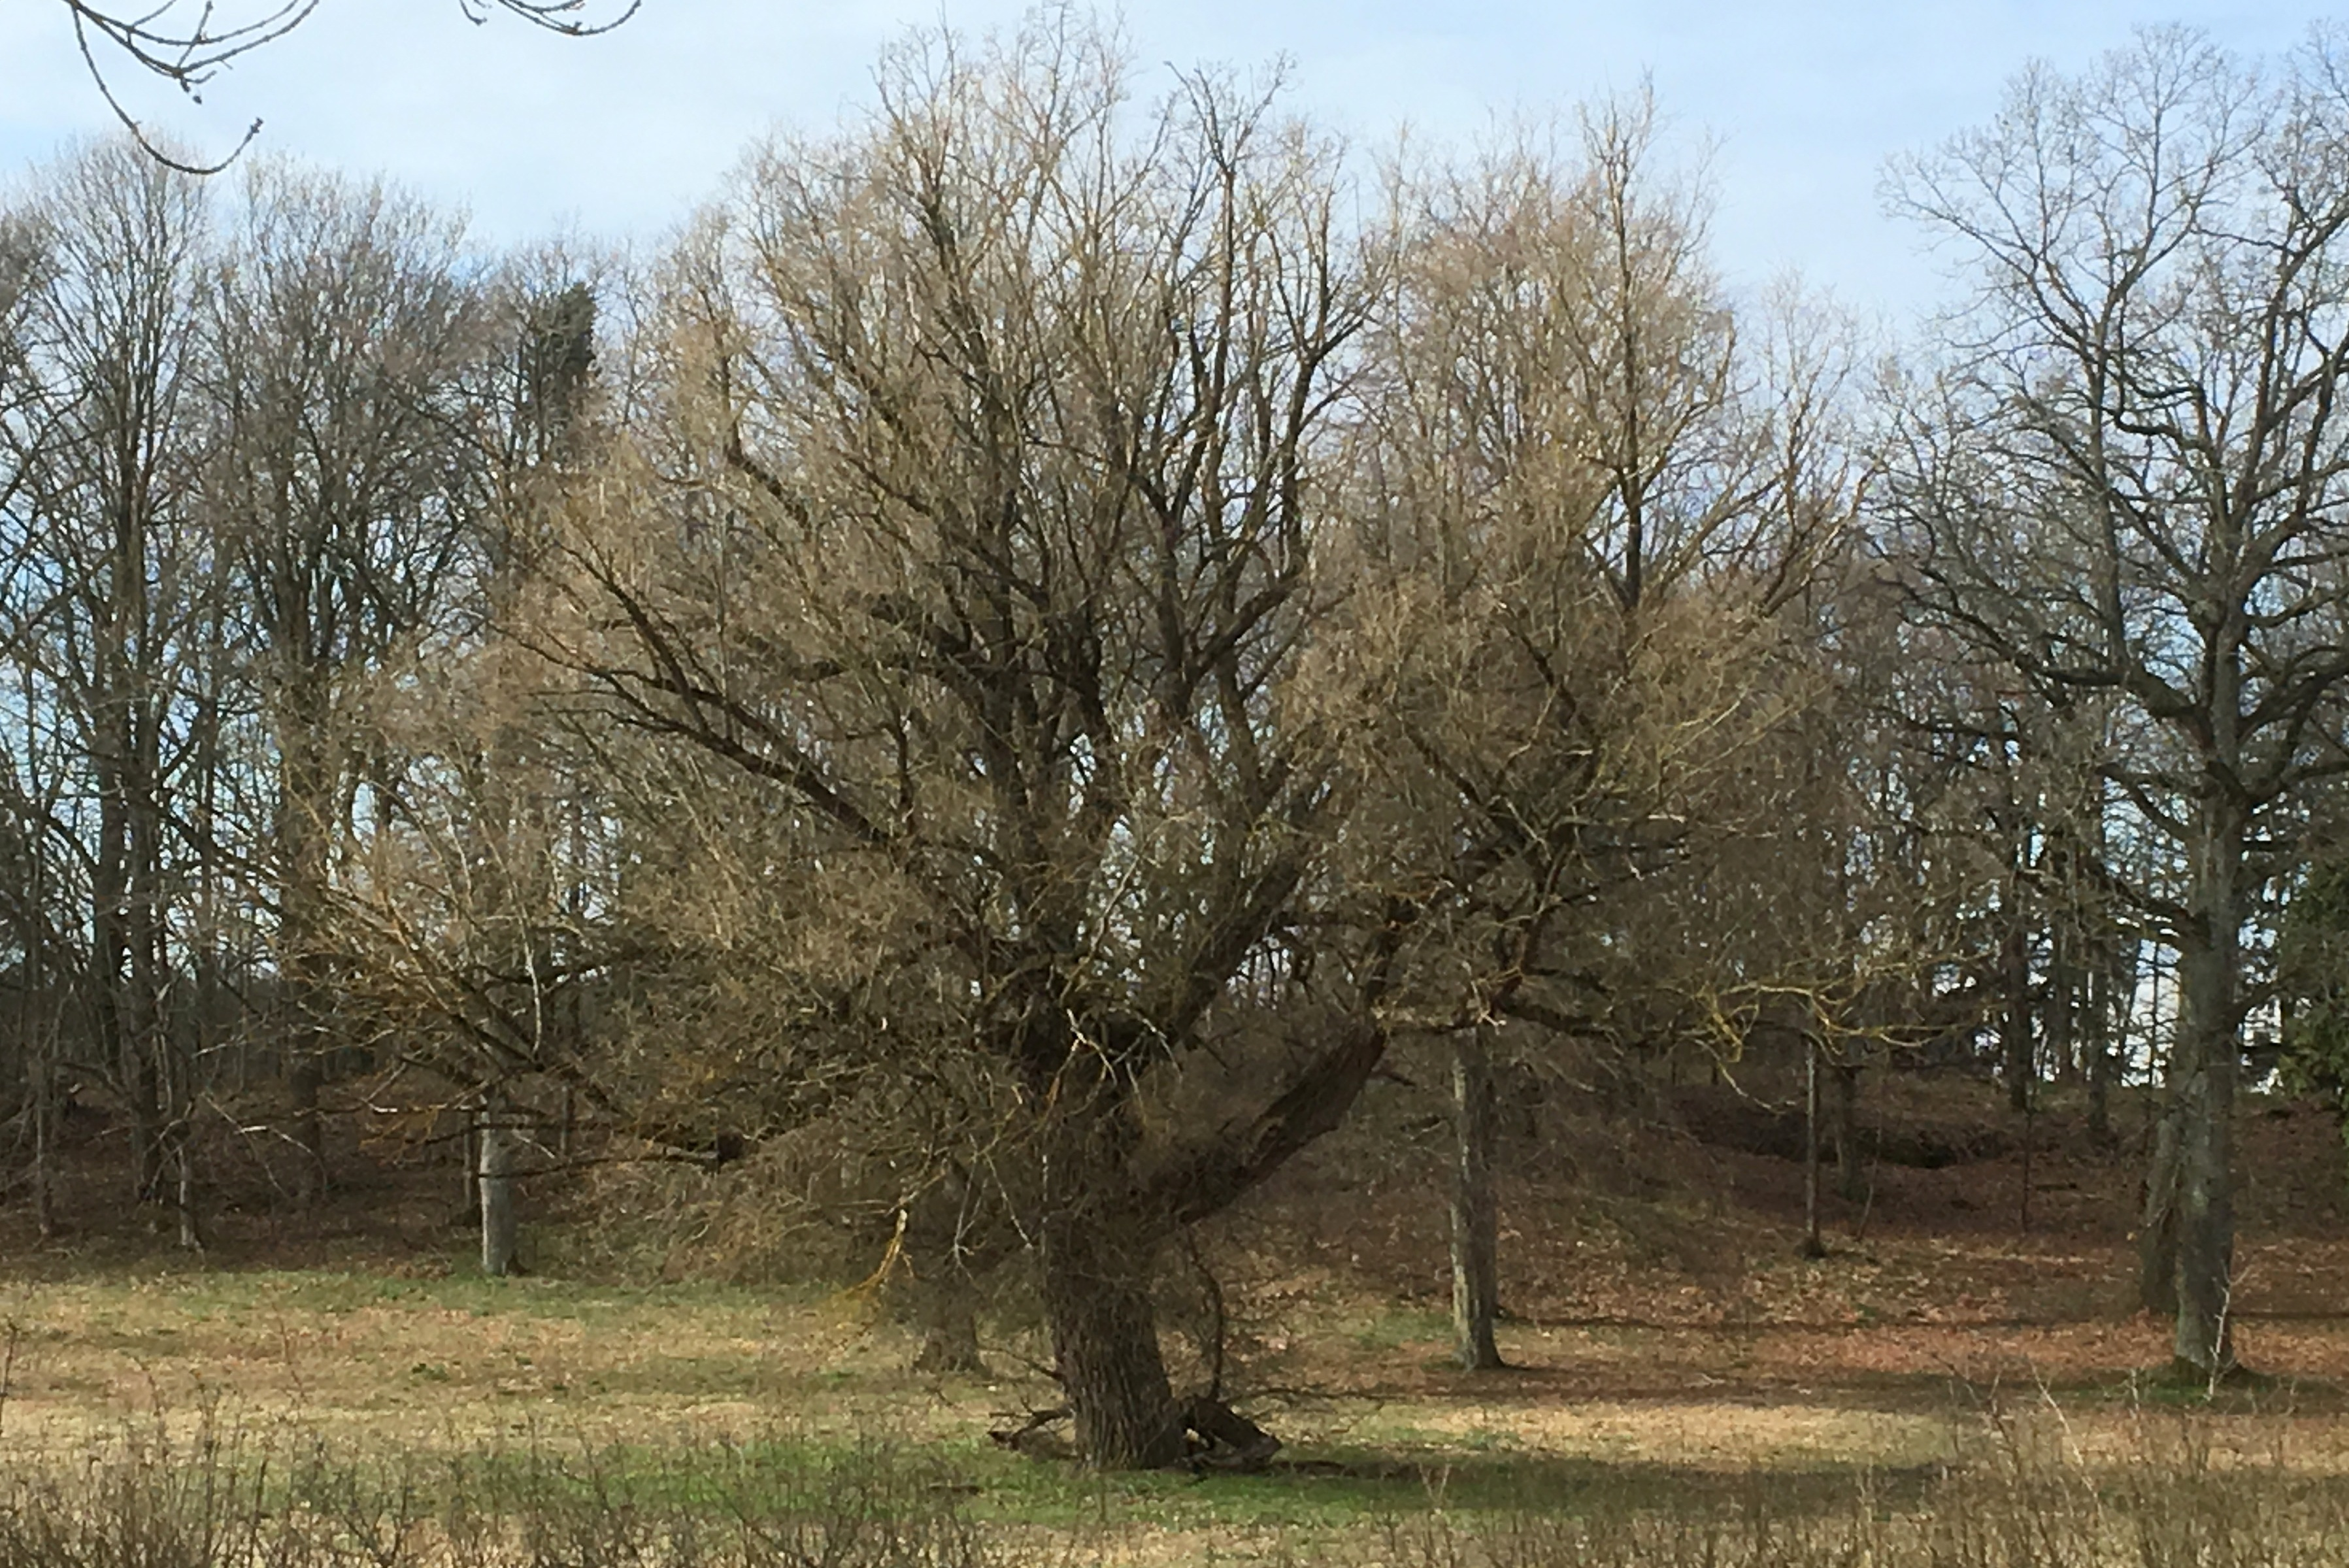 A solitary Linden tree on the lawn of Krusenhof